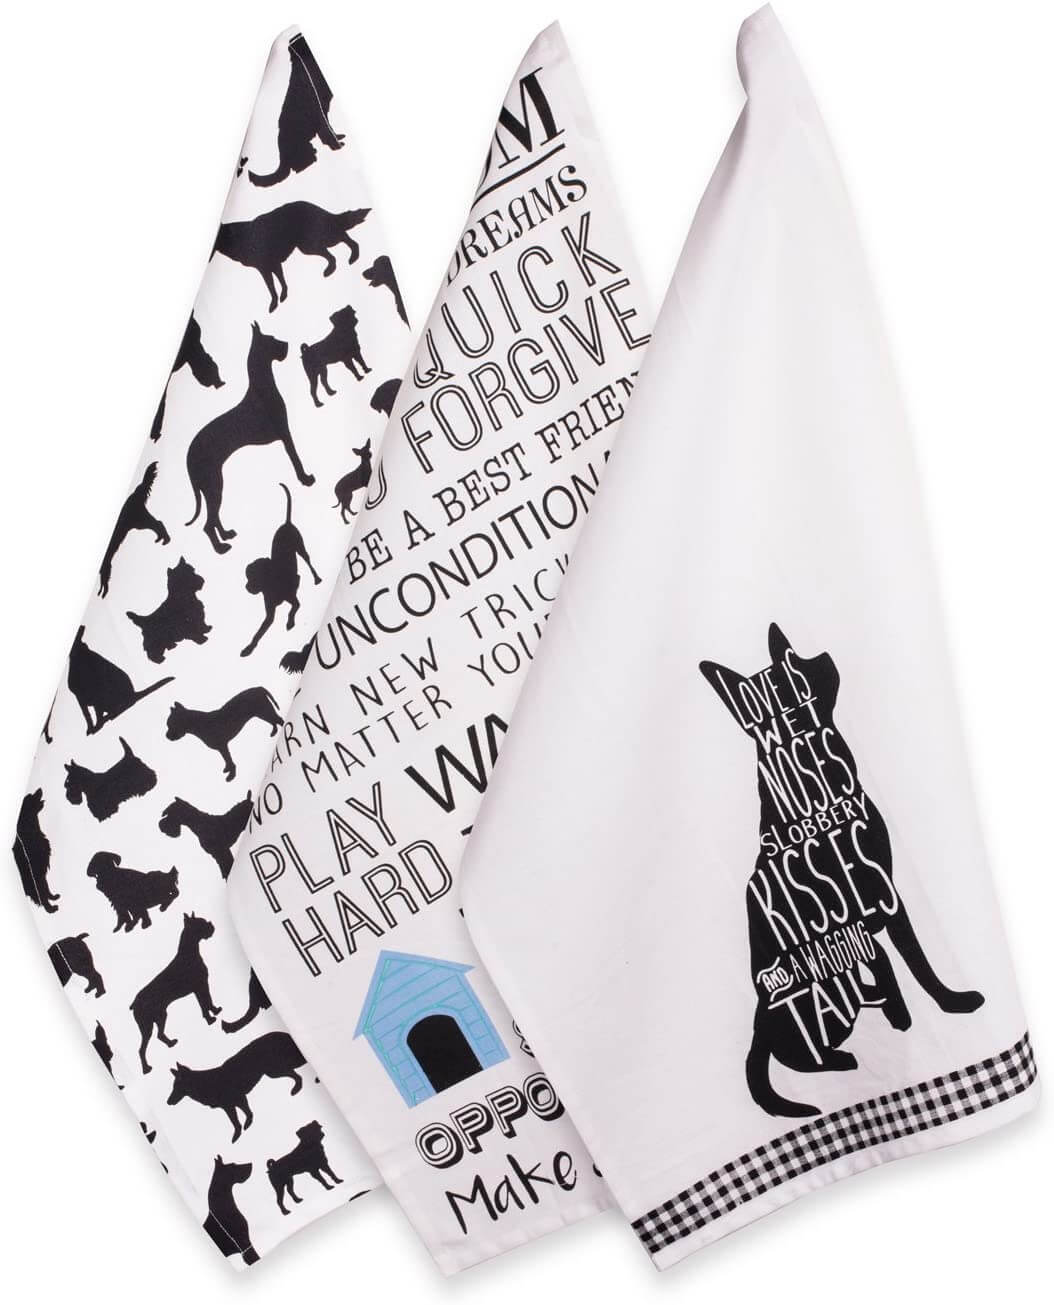 Black and White Dog Silhouette Dish Towels